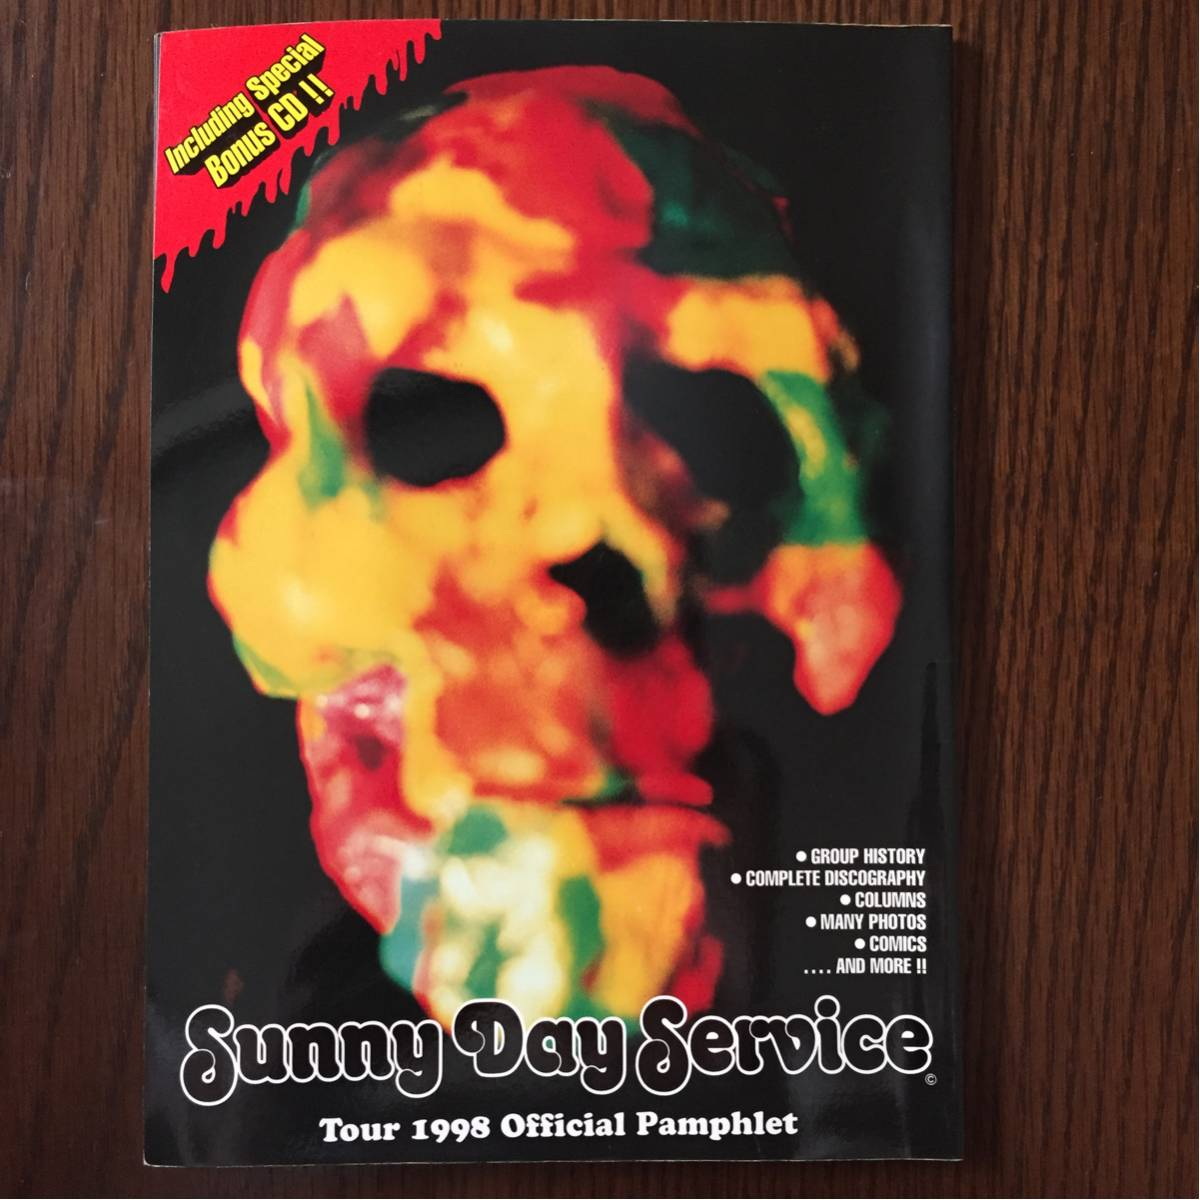 Sunny Day Service Tour 1998 Official Pamphlet CD付き 全64p